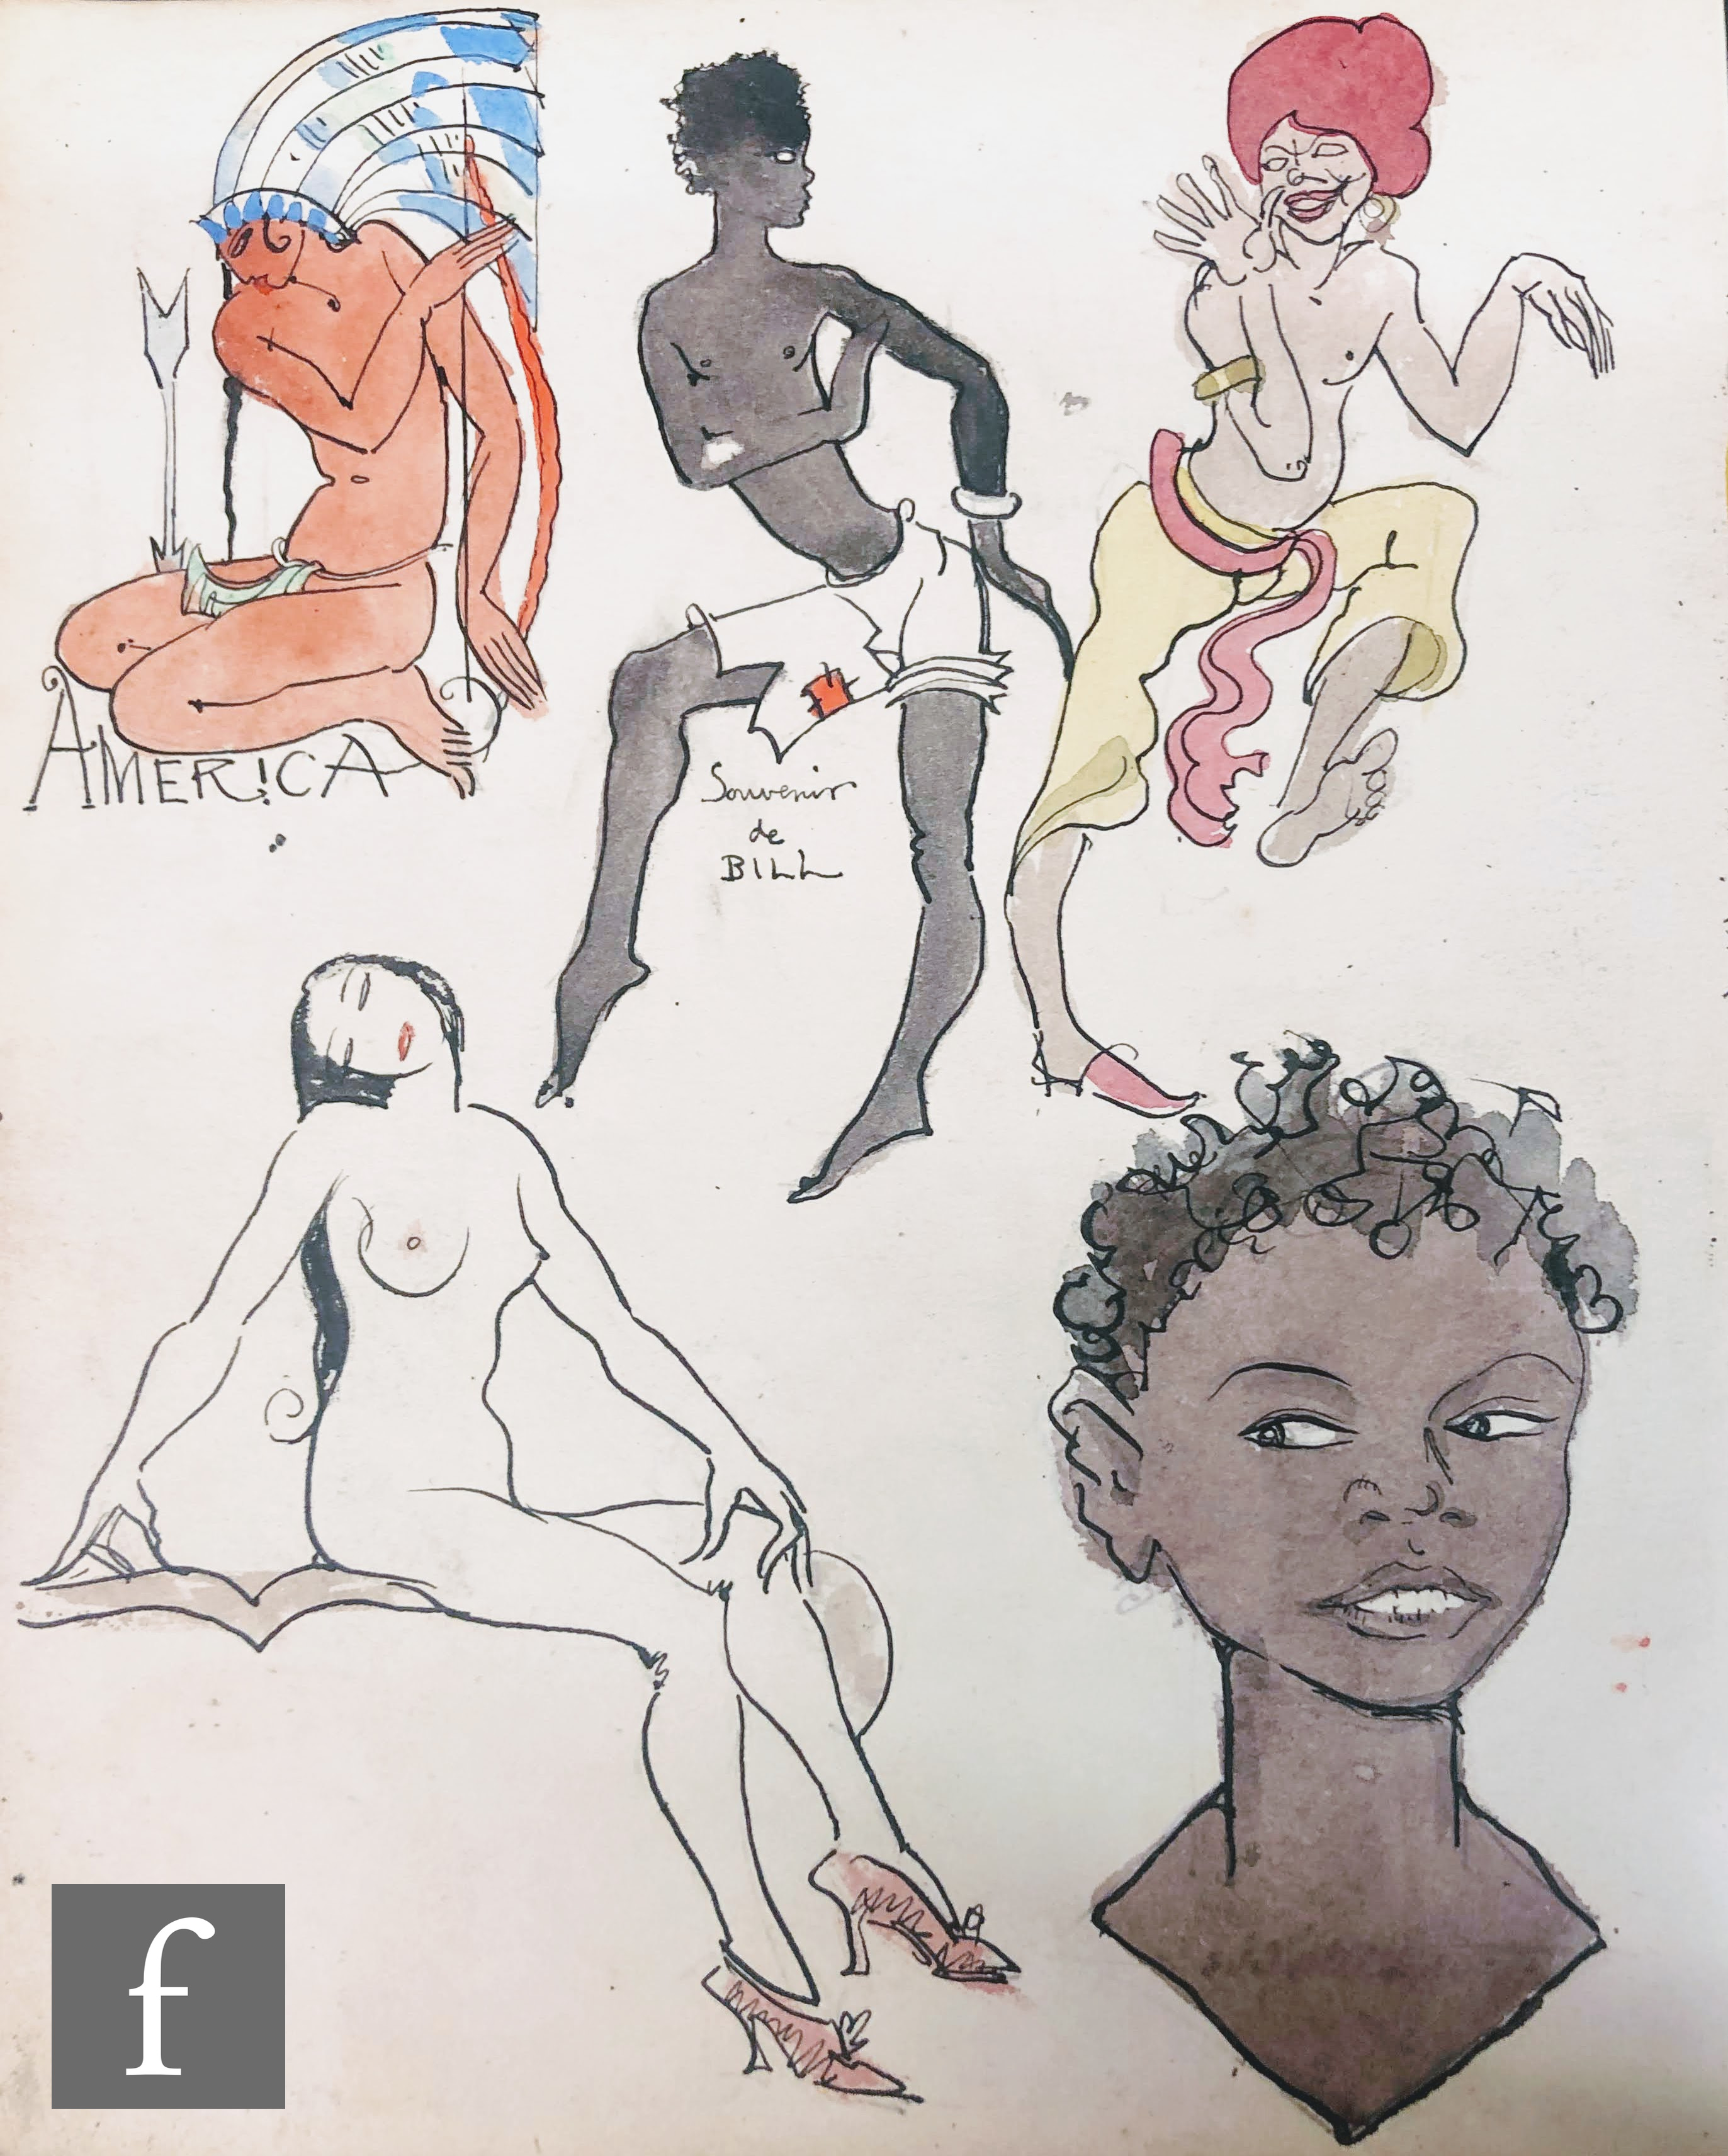 ALBERT WAINWRIGHT (1898-1943) - A study depicting various figures in an array of poses including a